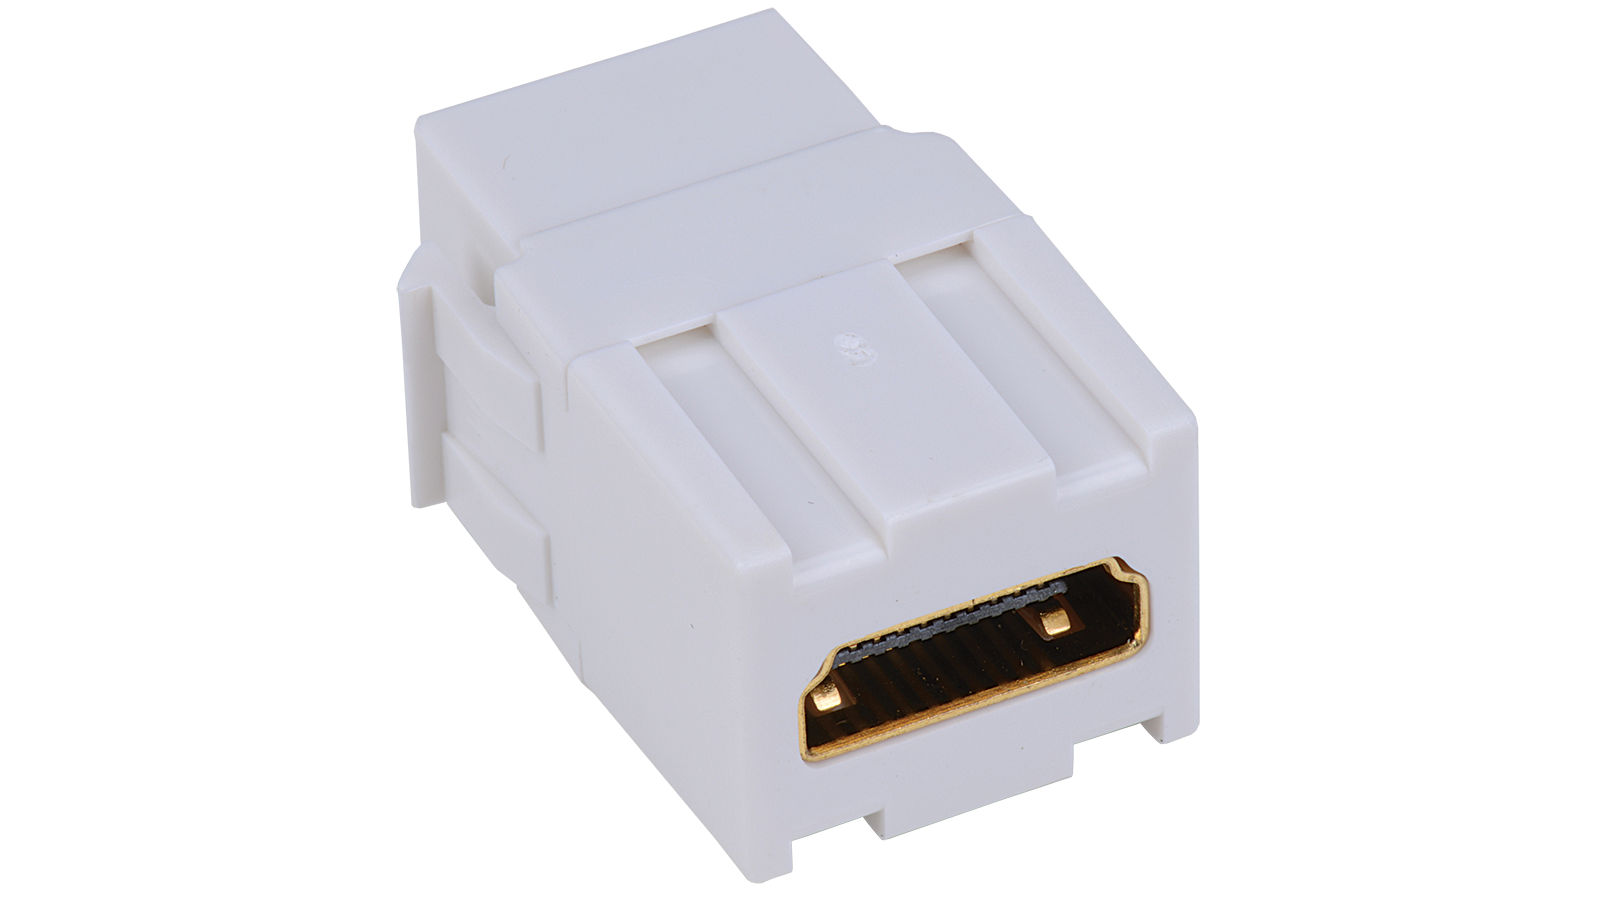 Iskm Hd Wh Keystone Compatible Hdmi Connector Pass Through Inserts Innovative Circuit Ict120124a Comm Series 120vac 12vdc 4 Amp